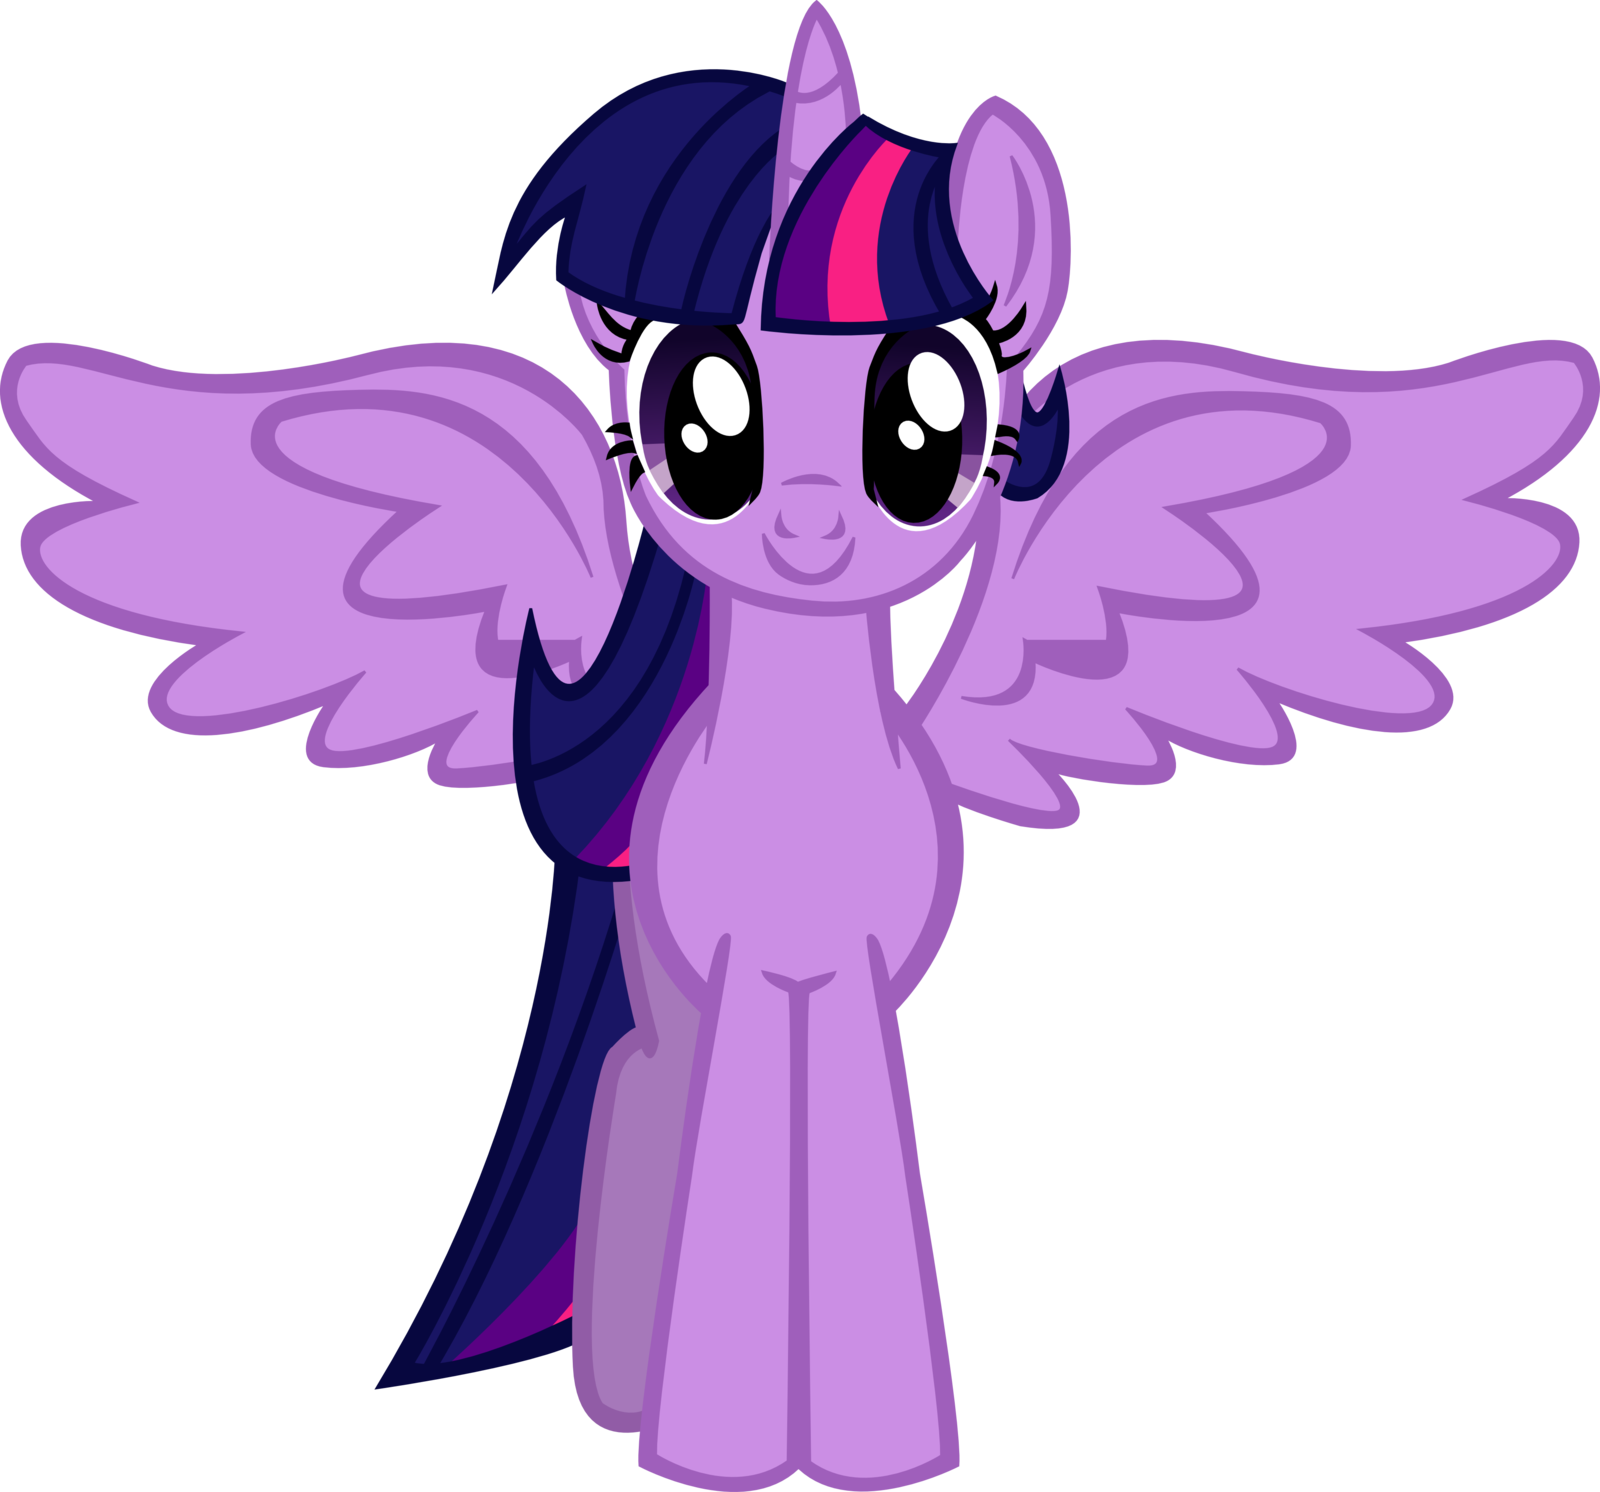 Twilight vector wing. Image sparkle alicorn controversy